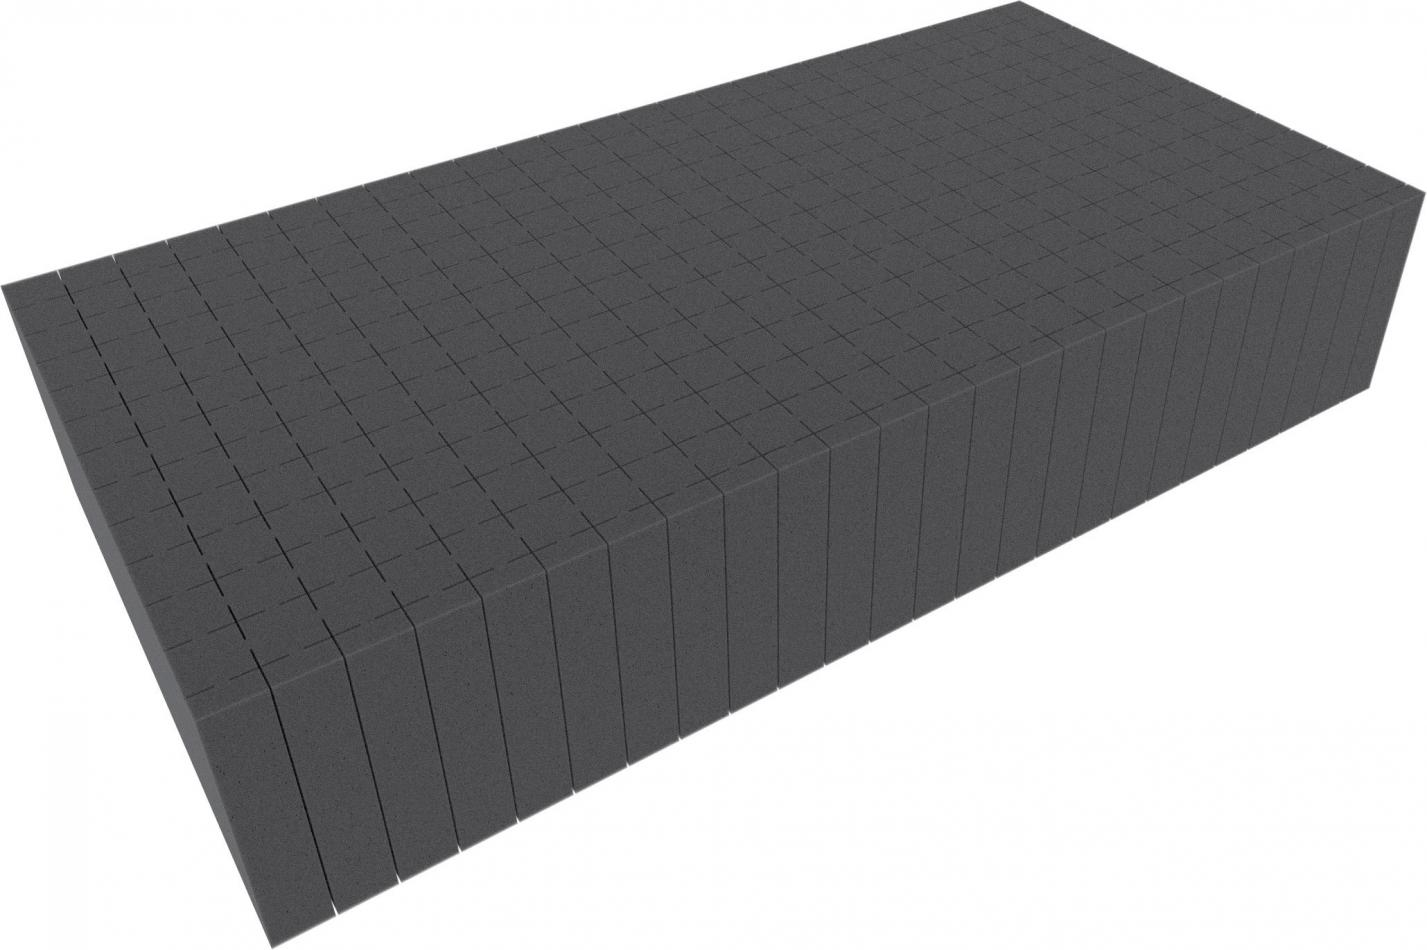 500 mm x 250 mm x 100 mm - Raster 20 mm - Pick and Pluck / Pre-Cubed foam tray